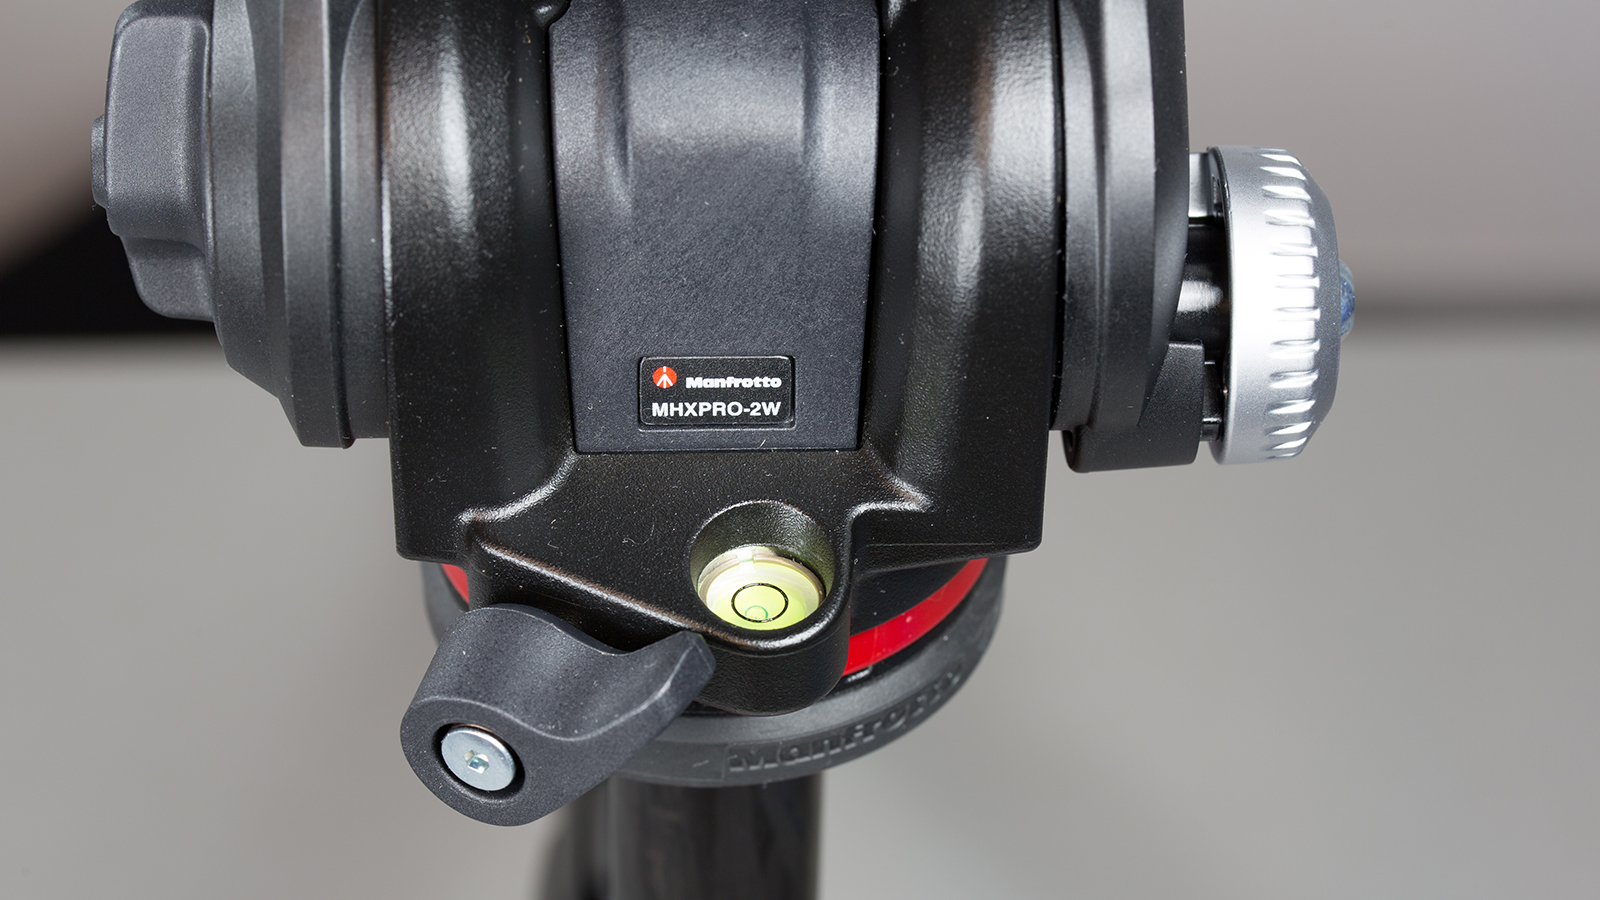 Manfrotto-MHXPRO-2W-DT-007-lood-lukk